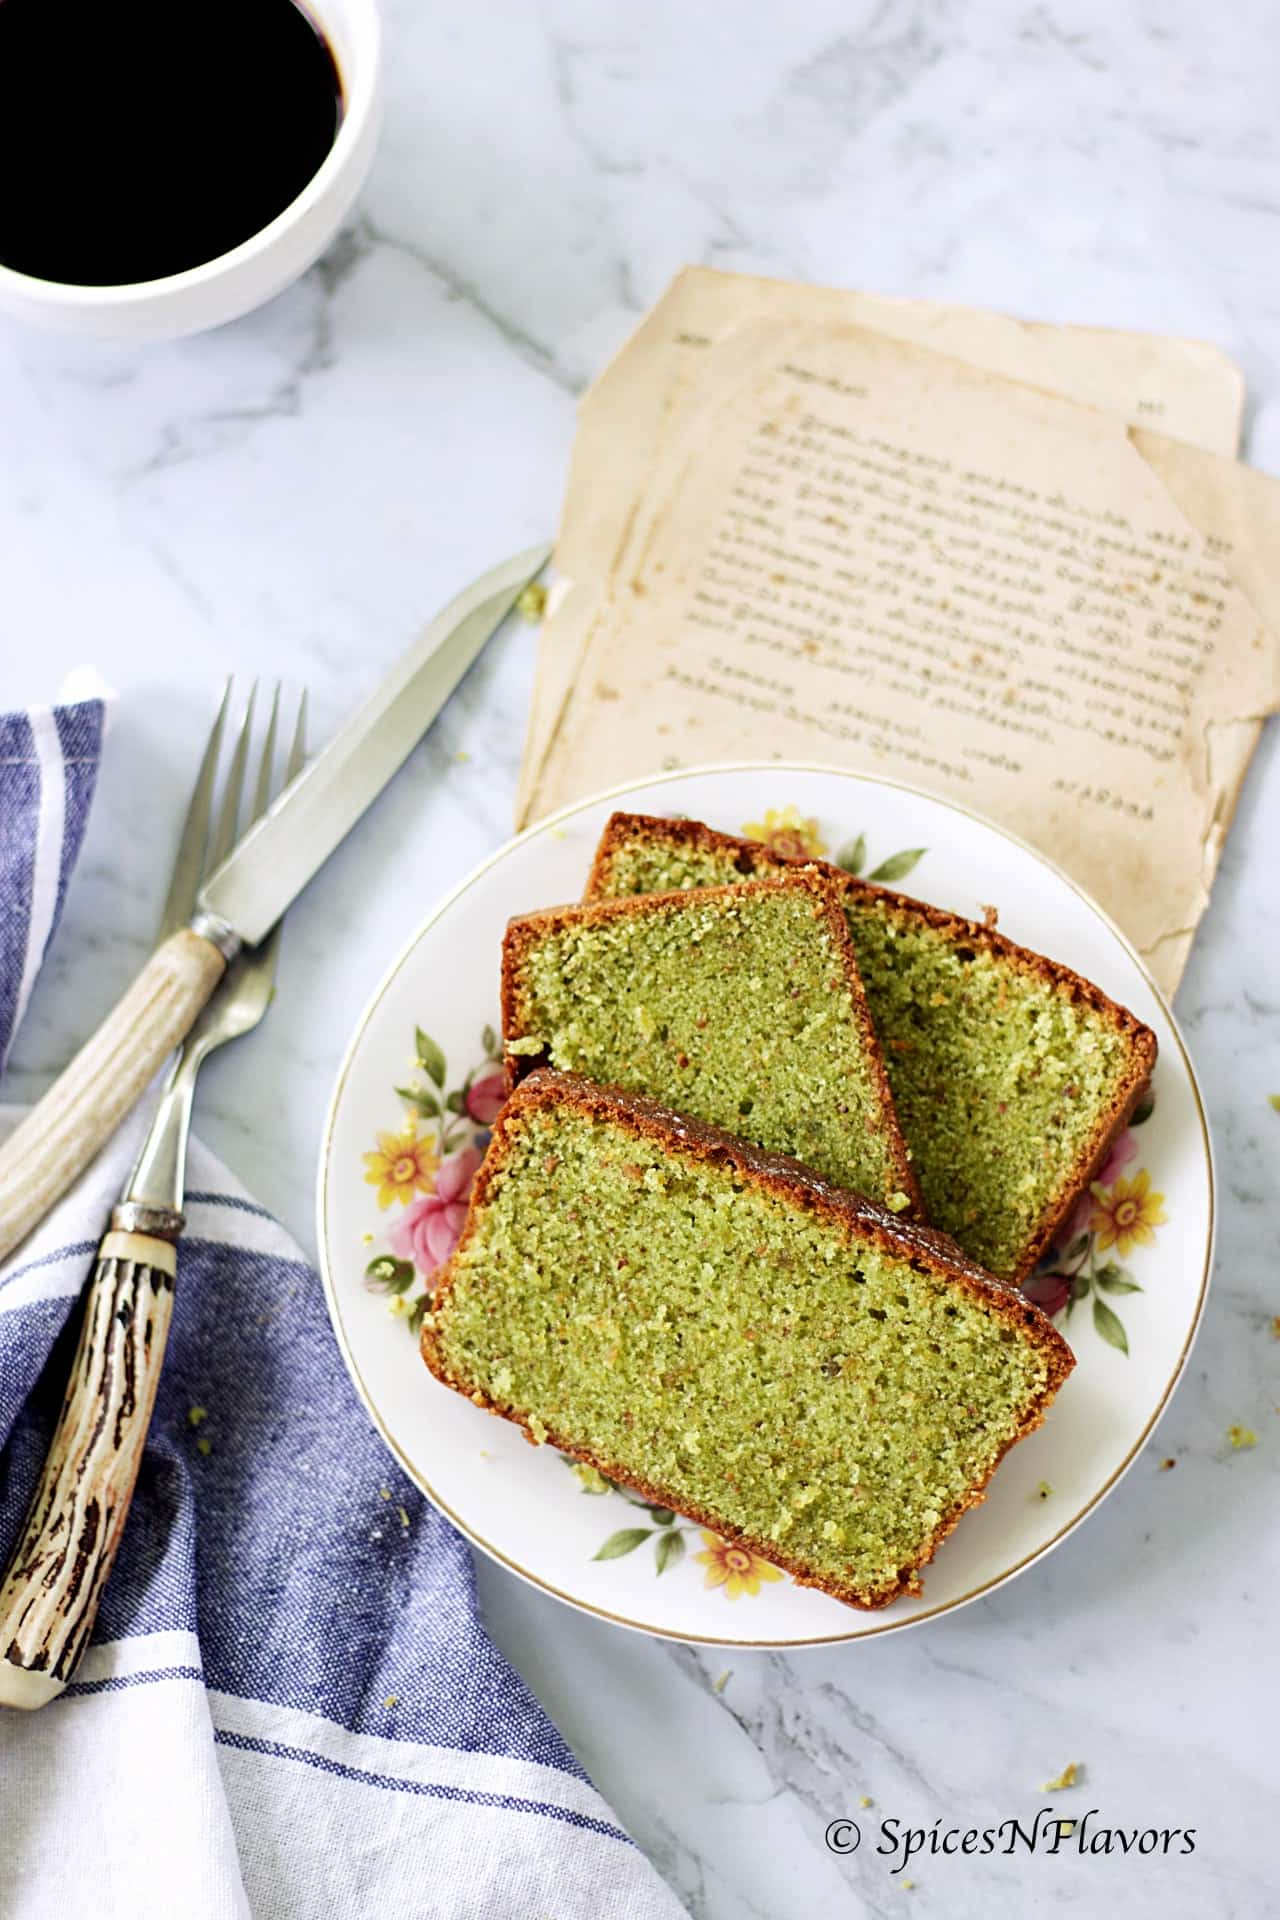 horizontal image of pistachio loaf cake showing the texture